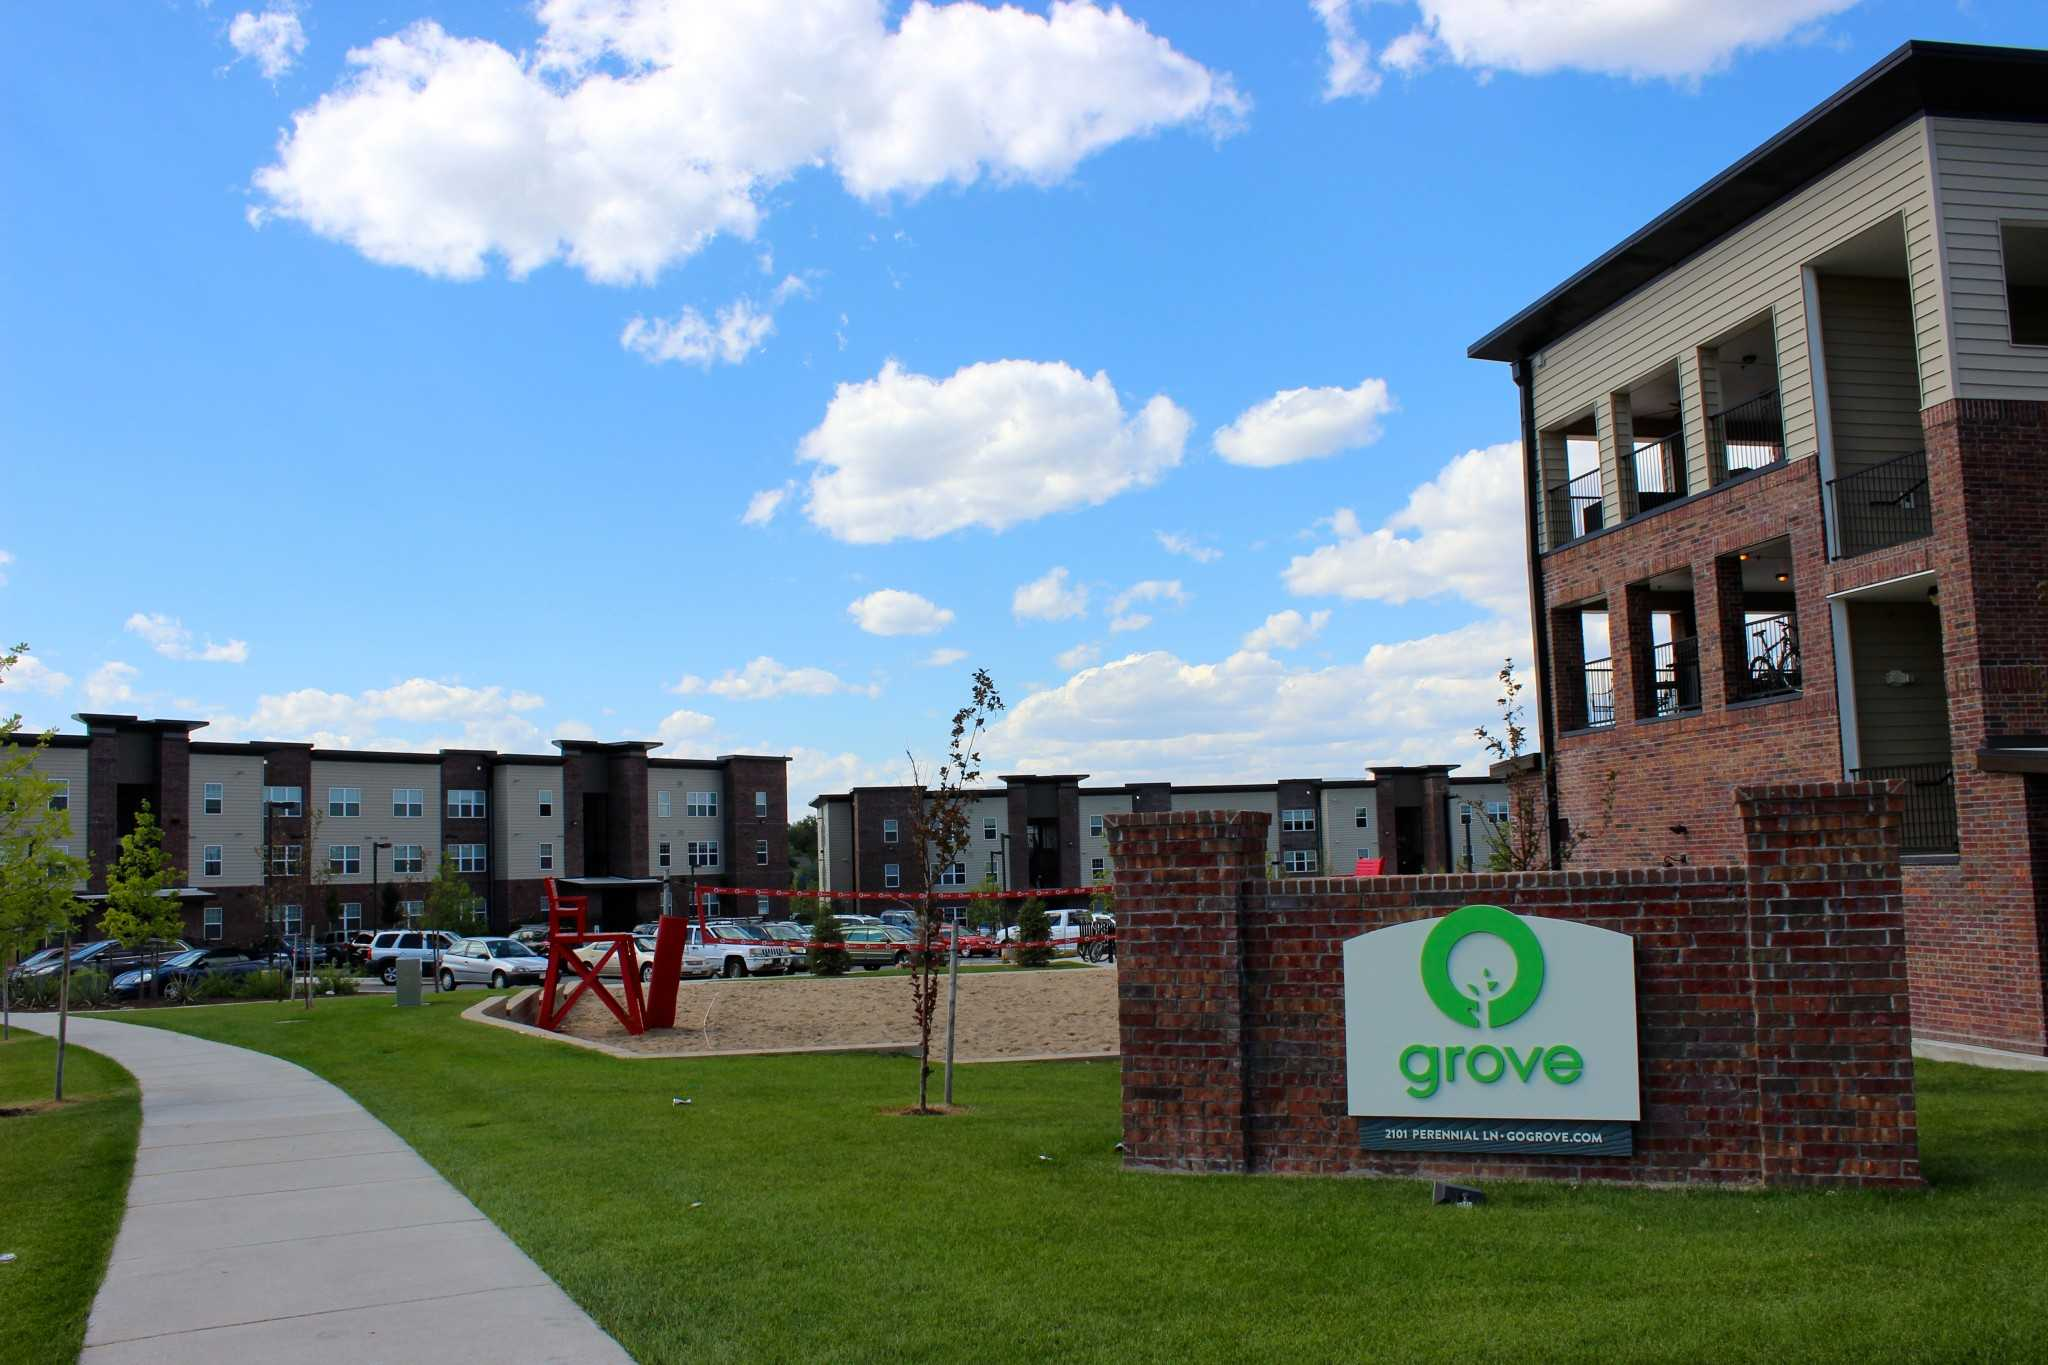 The Grove Is Just South Of Campus And Was Built In 2013.